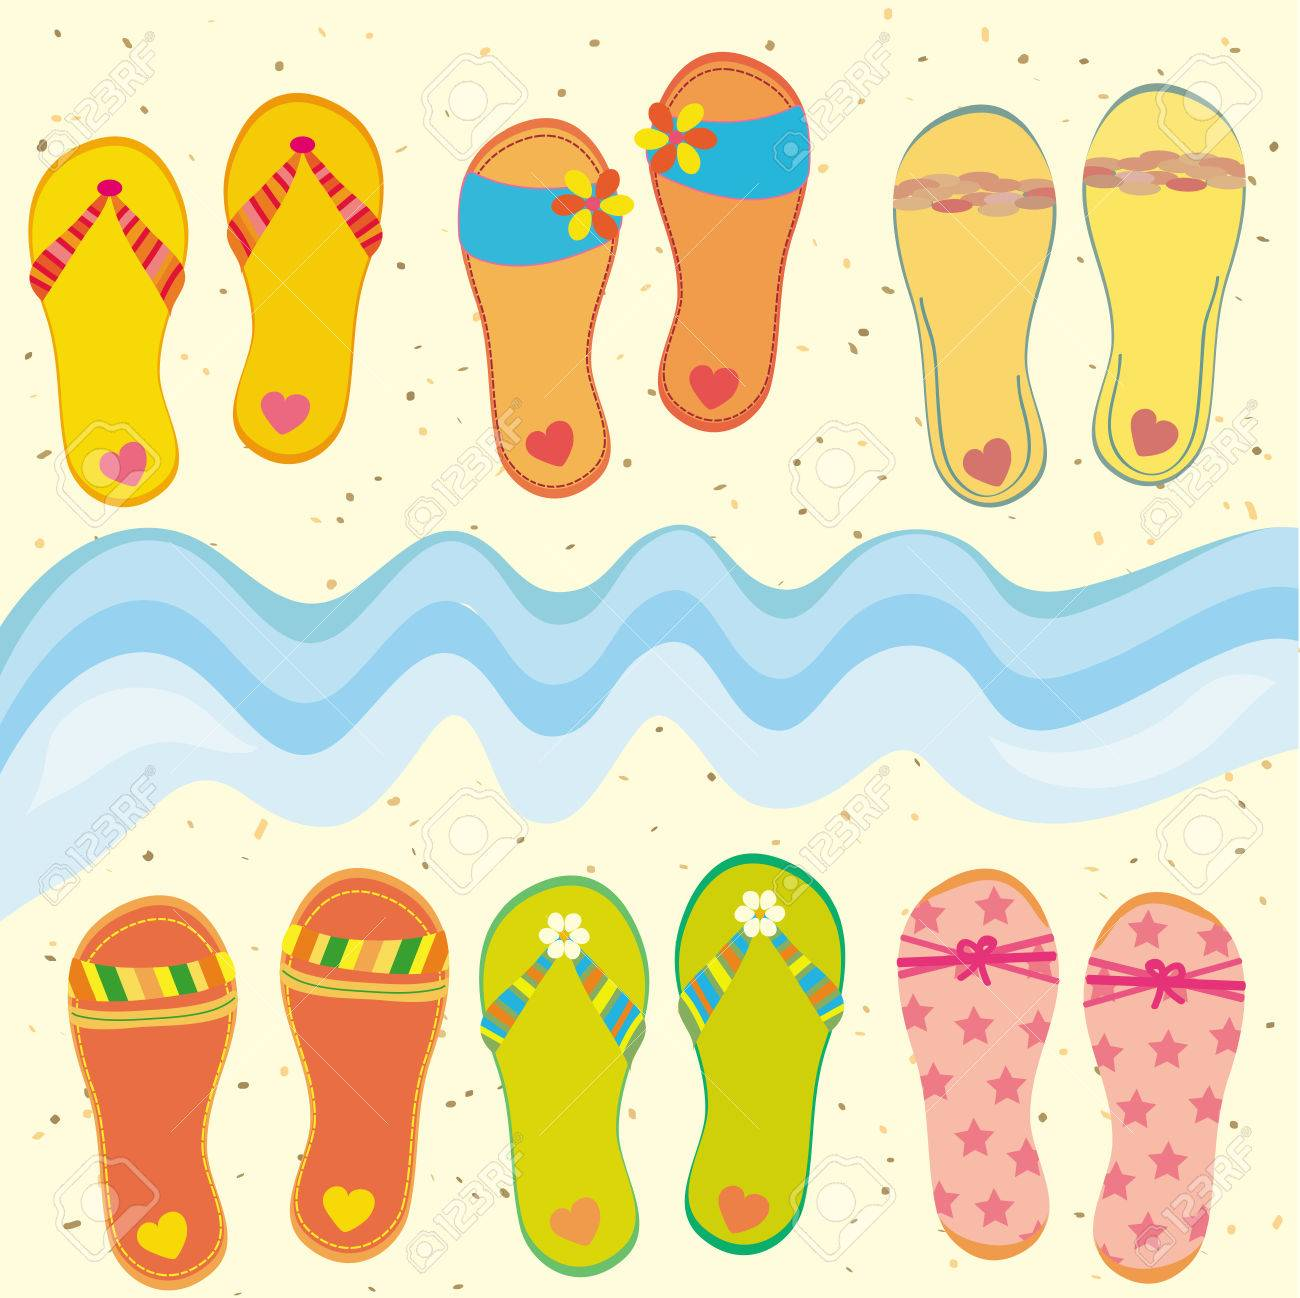 Beach Sandals Drawing Collection of Funny Flip-flops